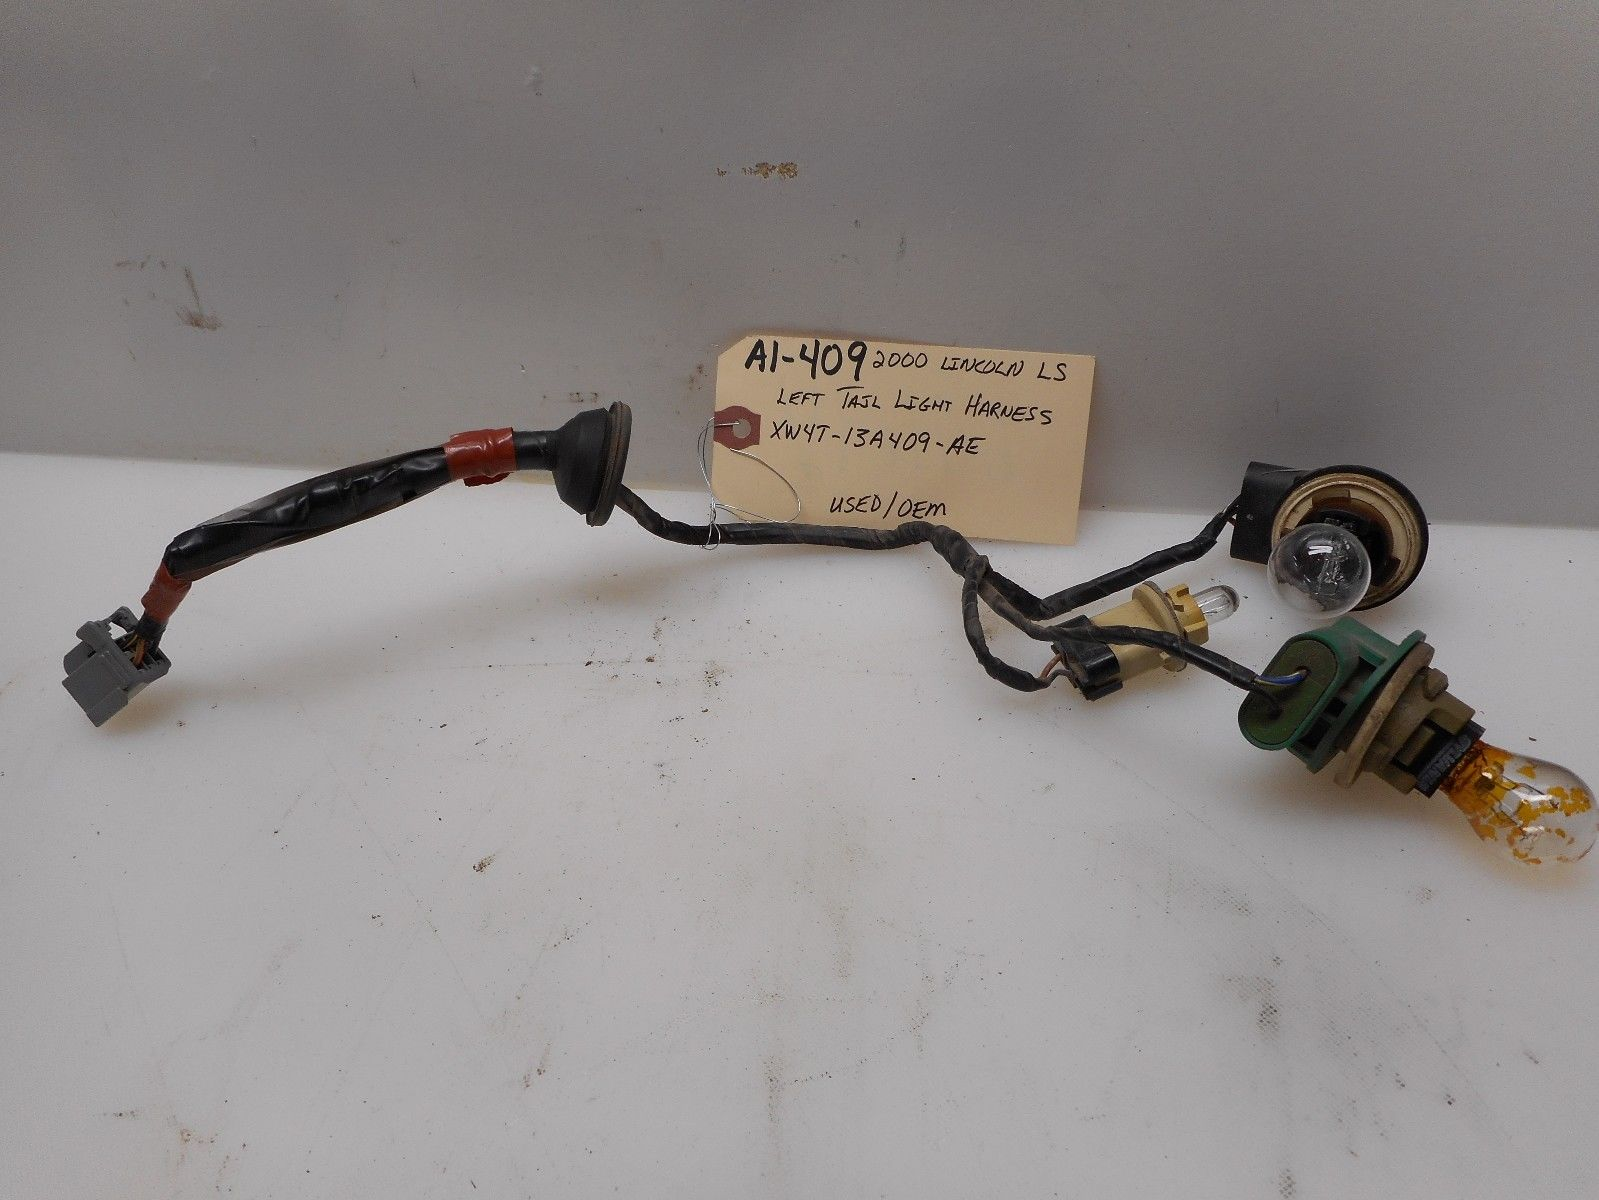 c320 tail light wiring harness 2000 lincoln ls left driver <em>tail< em> <em>